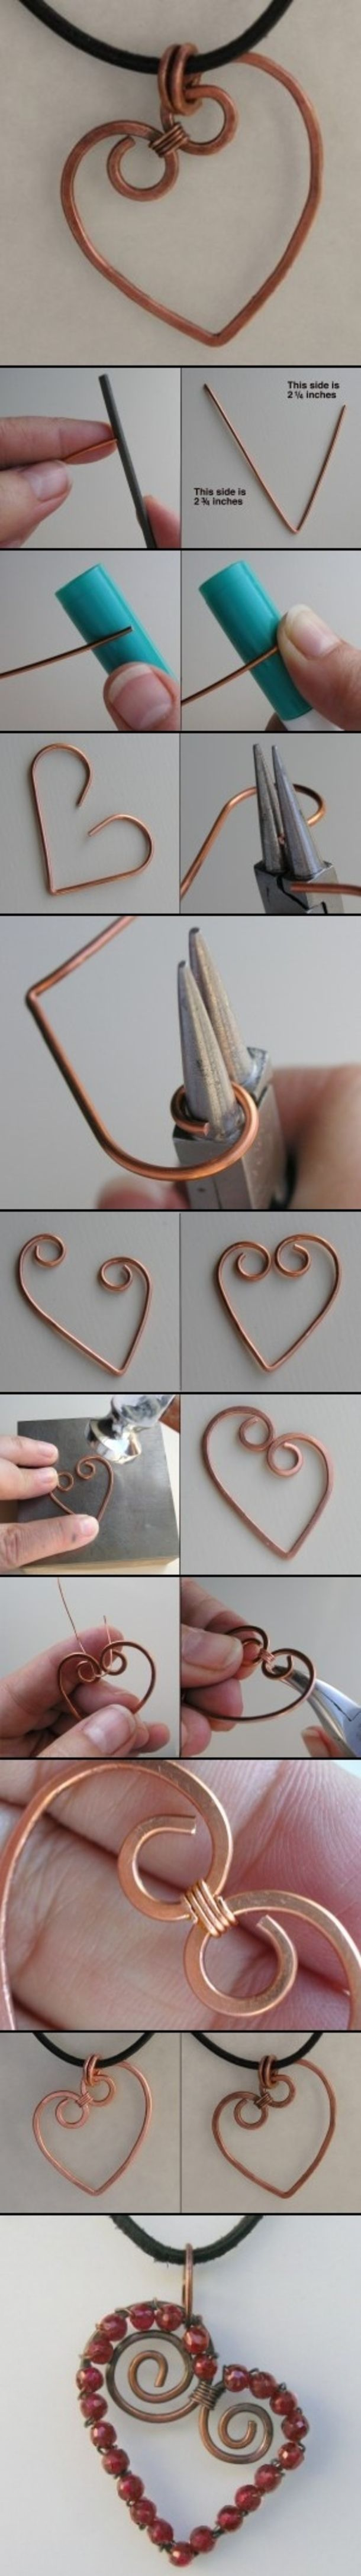 Simple wire heart necklace